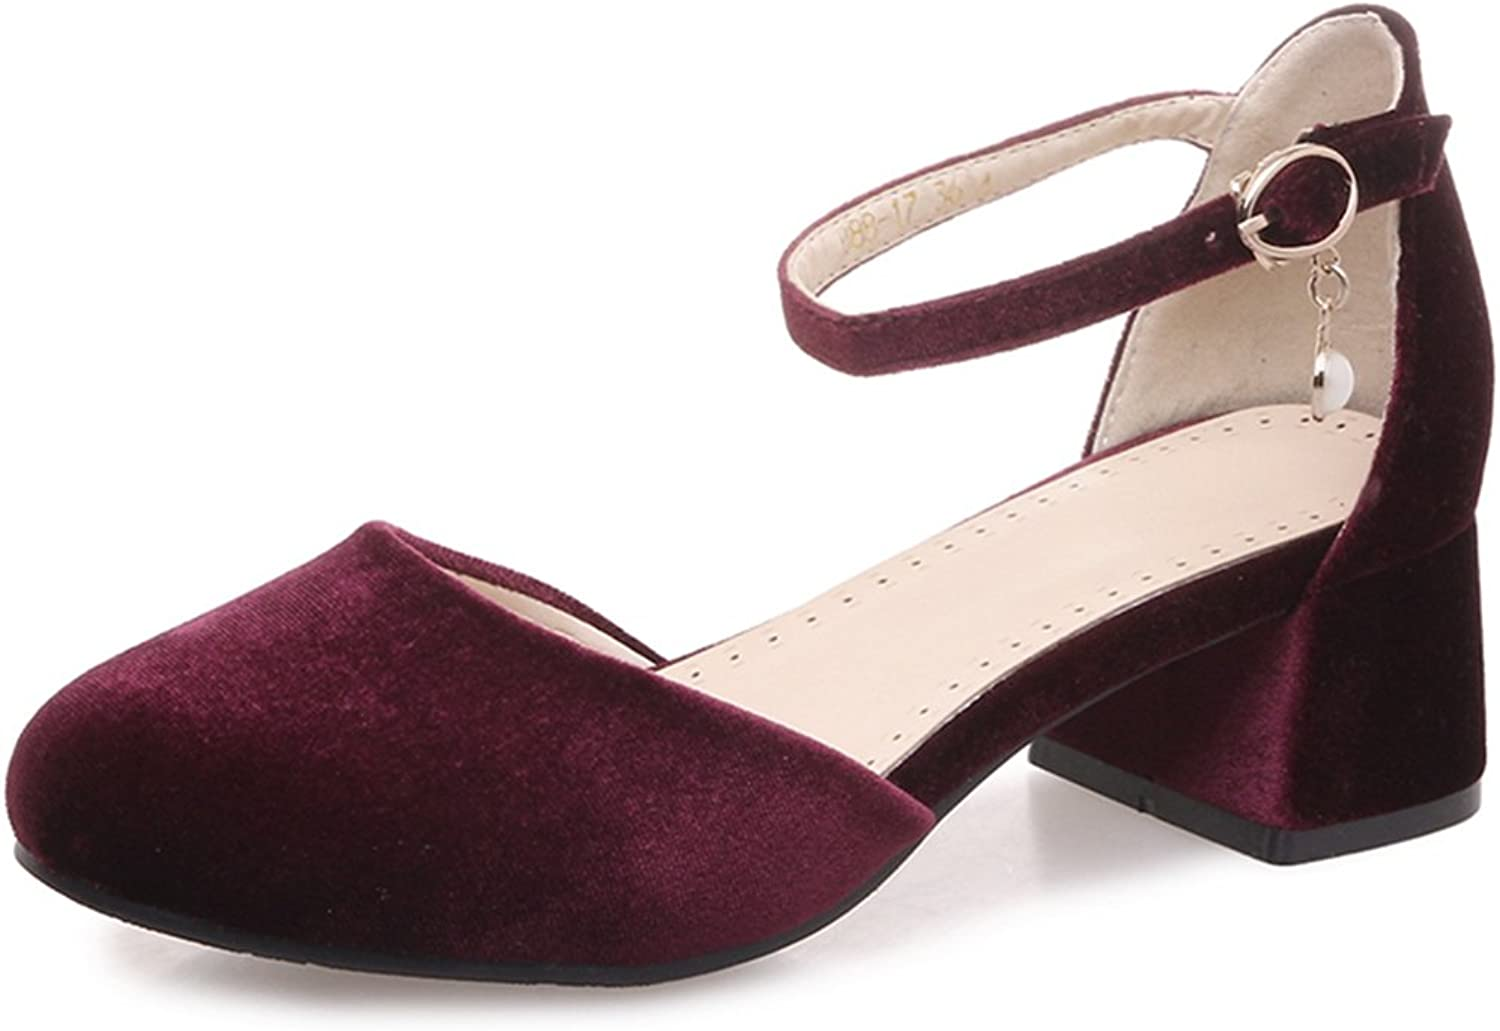 SaraIris Women's Chunky Mid Heel shoes D'Orsay Prom Casual Pumps